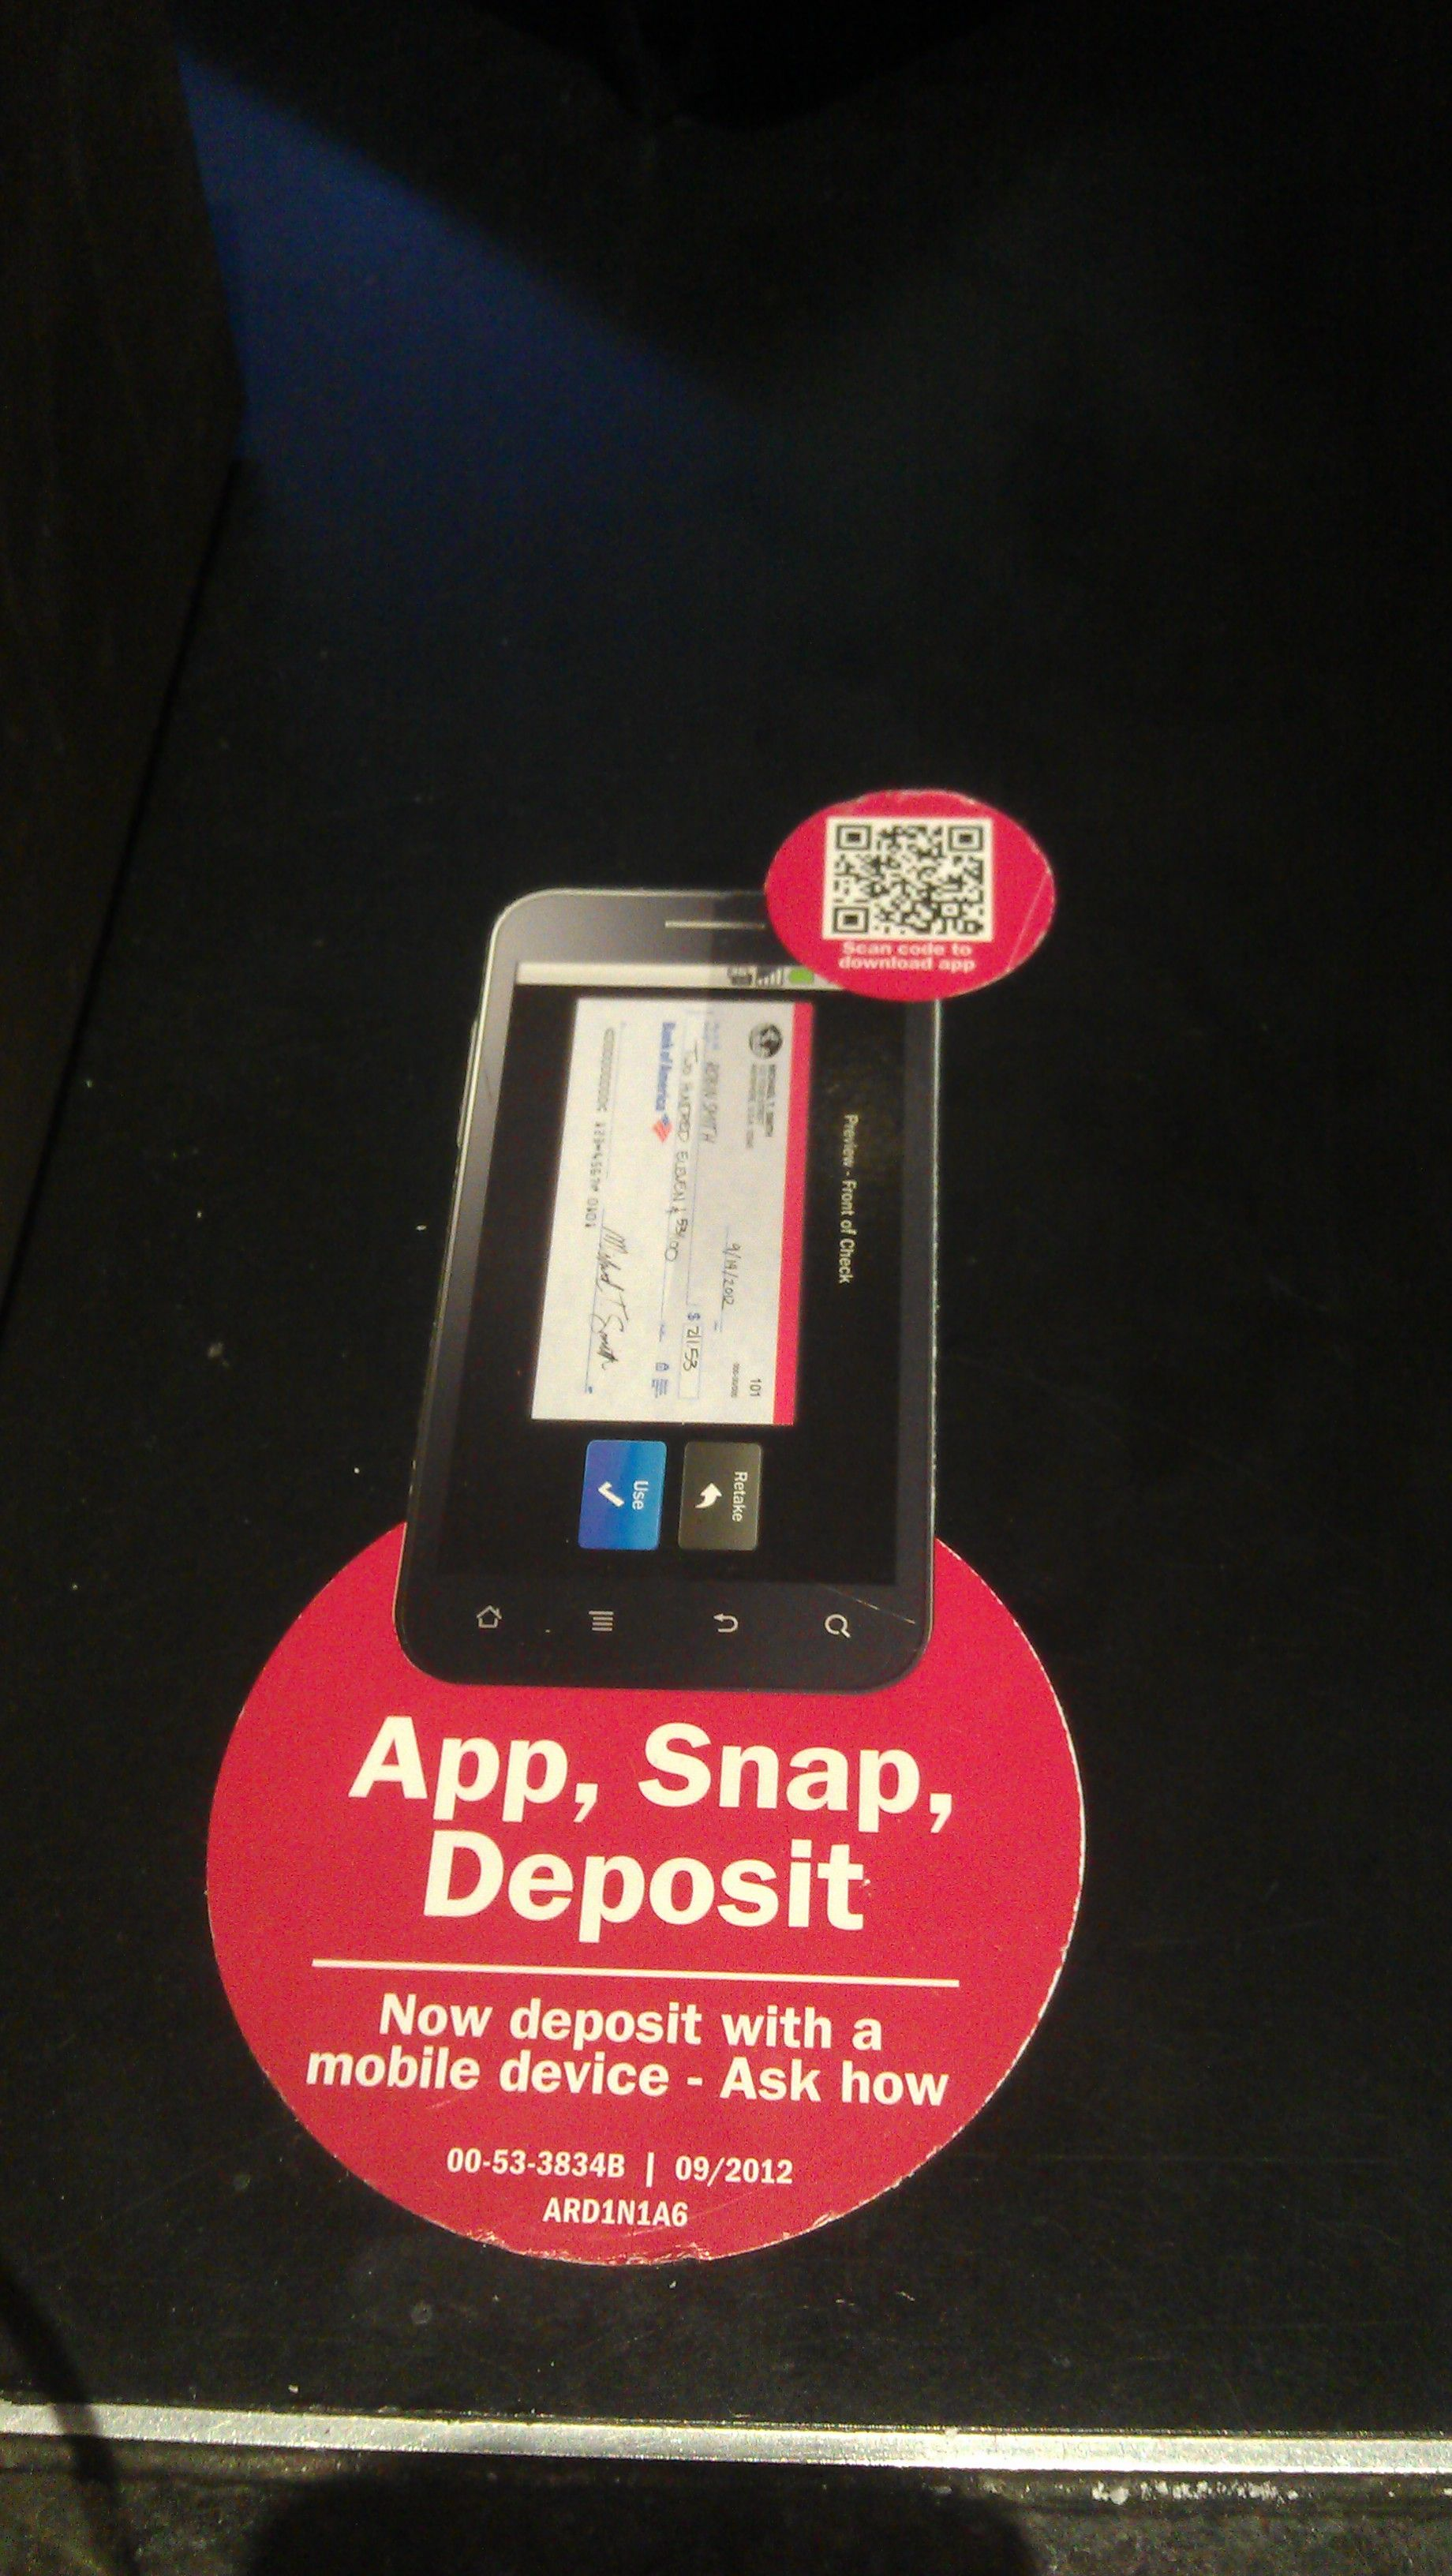 A QR code is used to encourage download of a banking